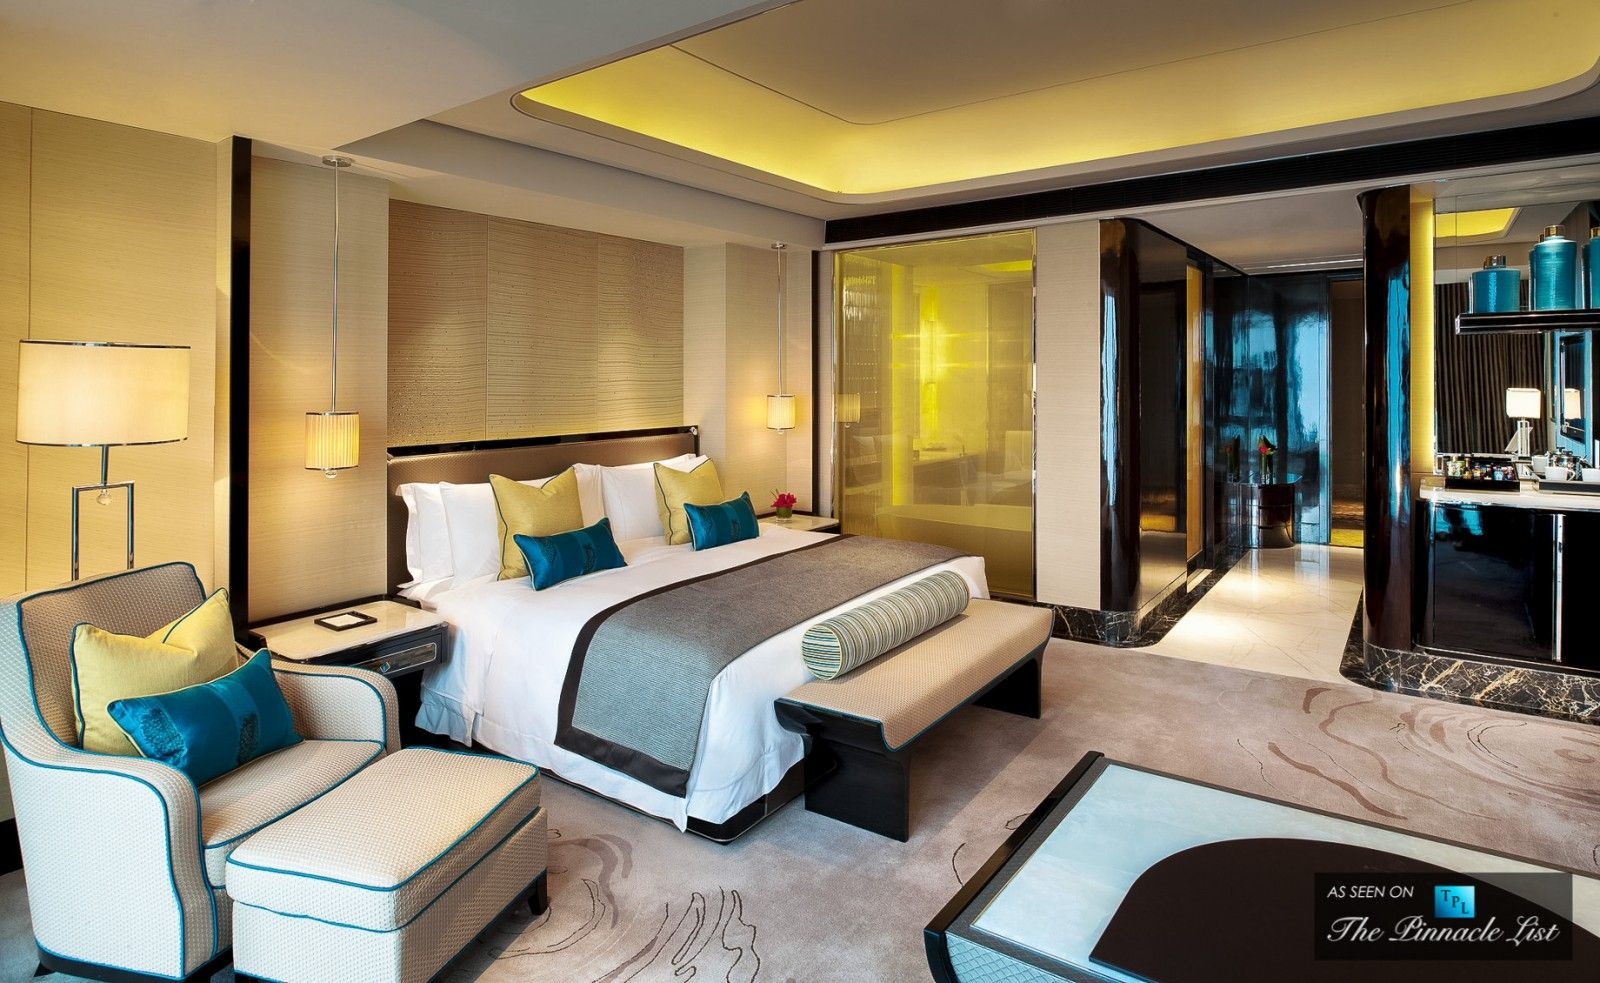 Comfort abounds in this hotel suite (St. Regis Luxury Hotel, Shenzhen, China